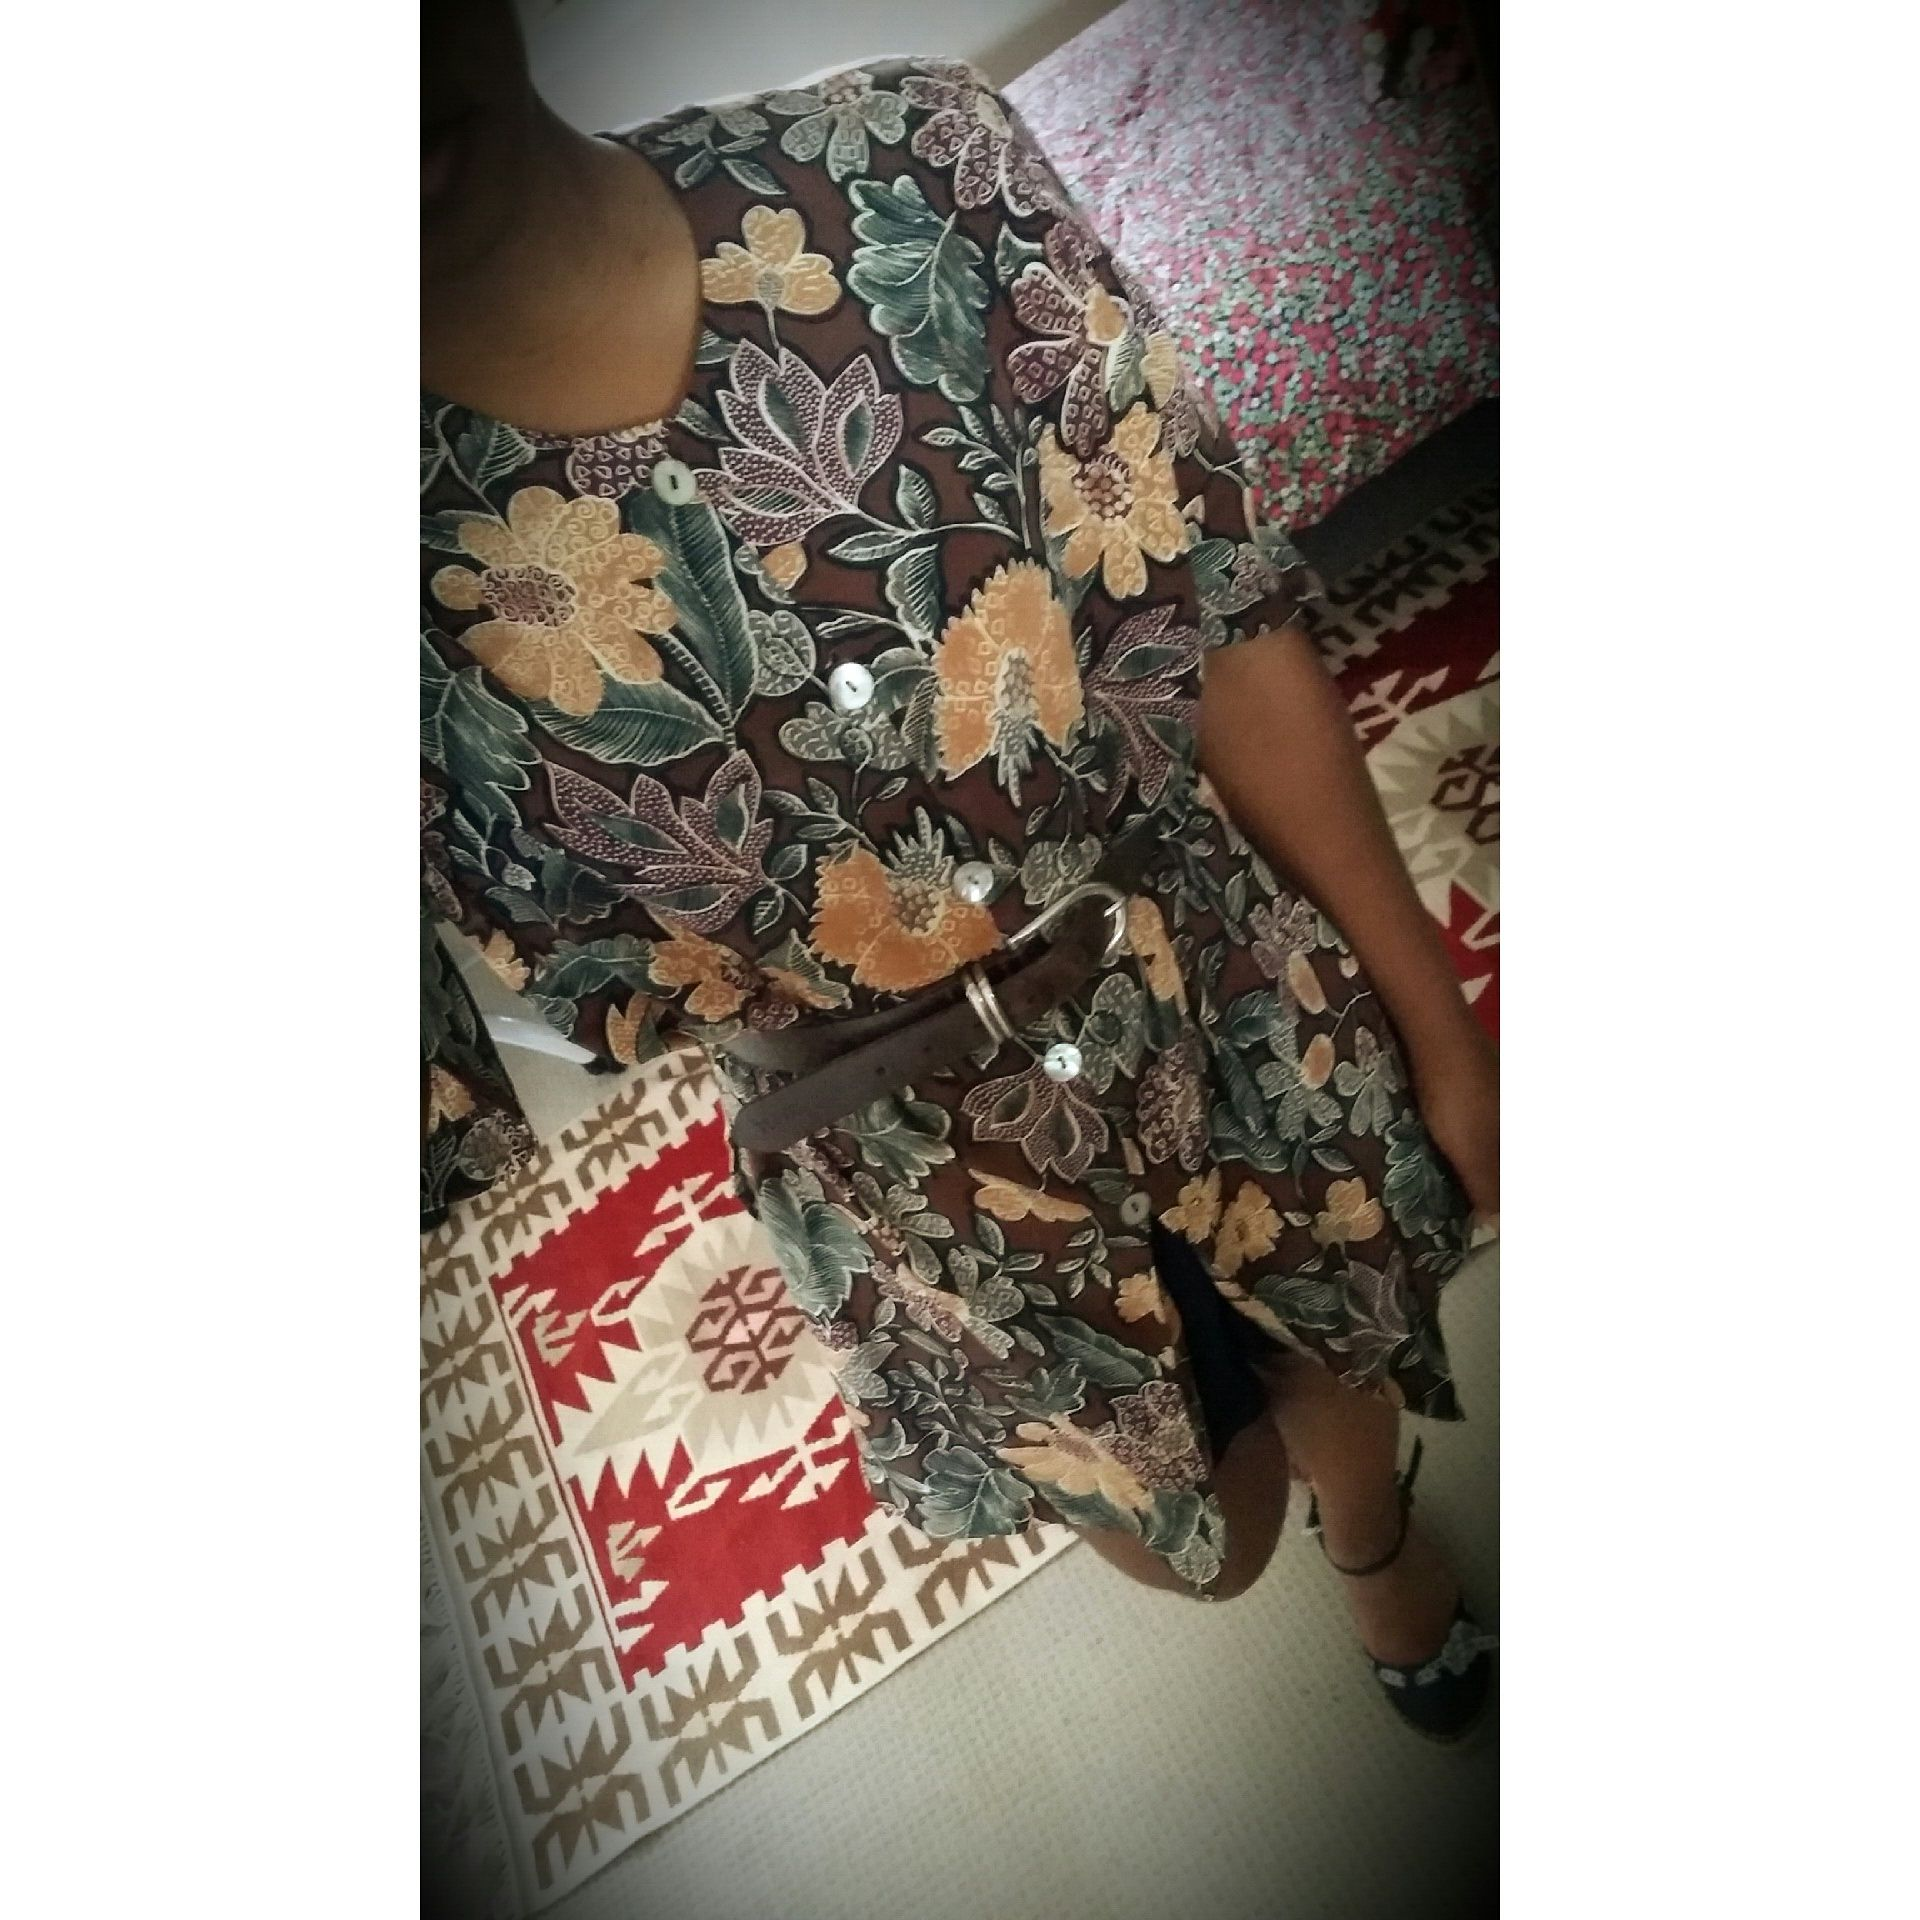 My grandma gave me this long shirt a few days ago. I wasn't sure about the cut of the sleeves but now I quite like it. Belted and paired with some basic black shorts and navy low espadrilles, made a nice simple outfit for the day. Thanks Grandma! #beckywears #grandma #handmedowns #bigprints #floral #vintagestyle #twenties #youngadult #womensfashion #earthycolours #browns